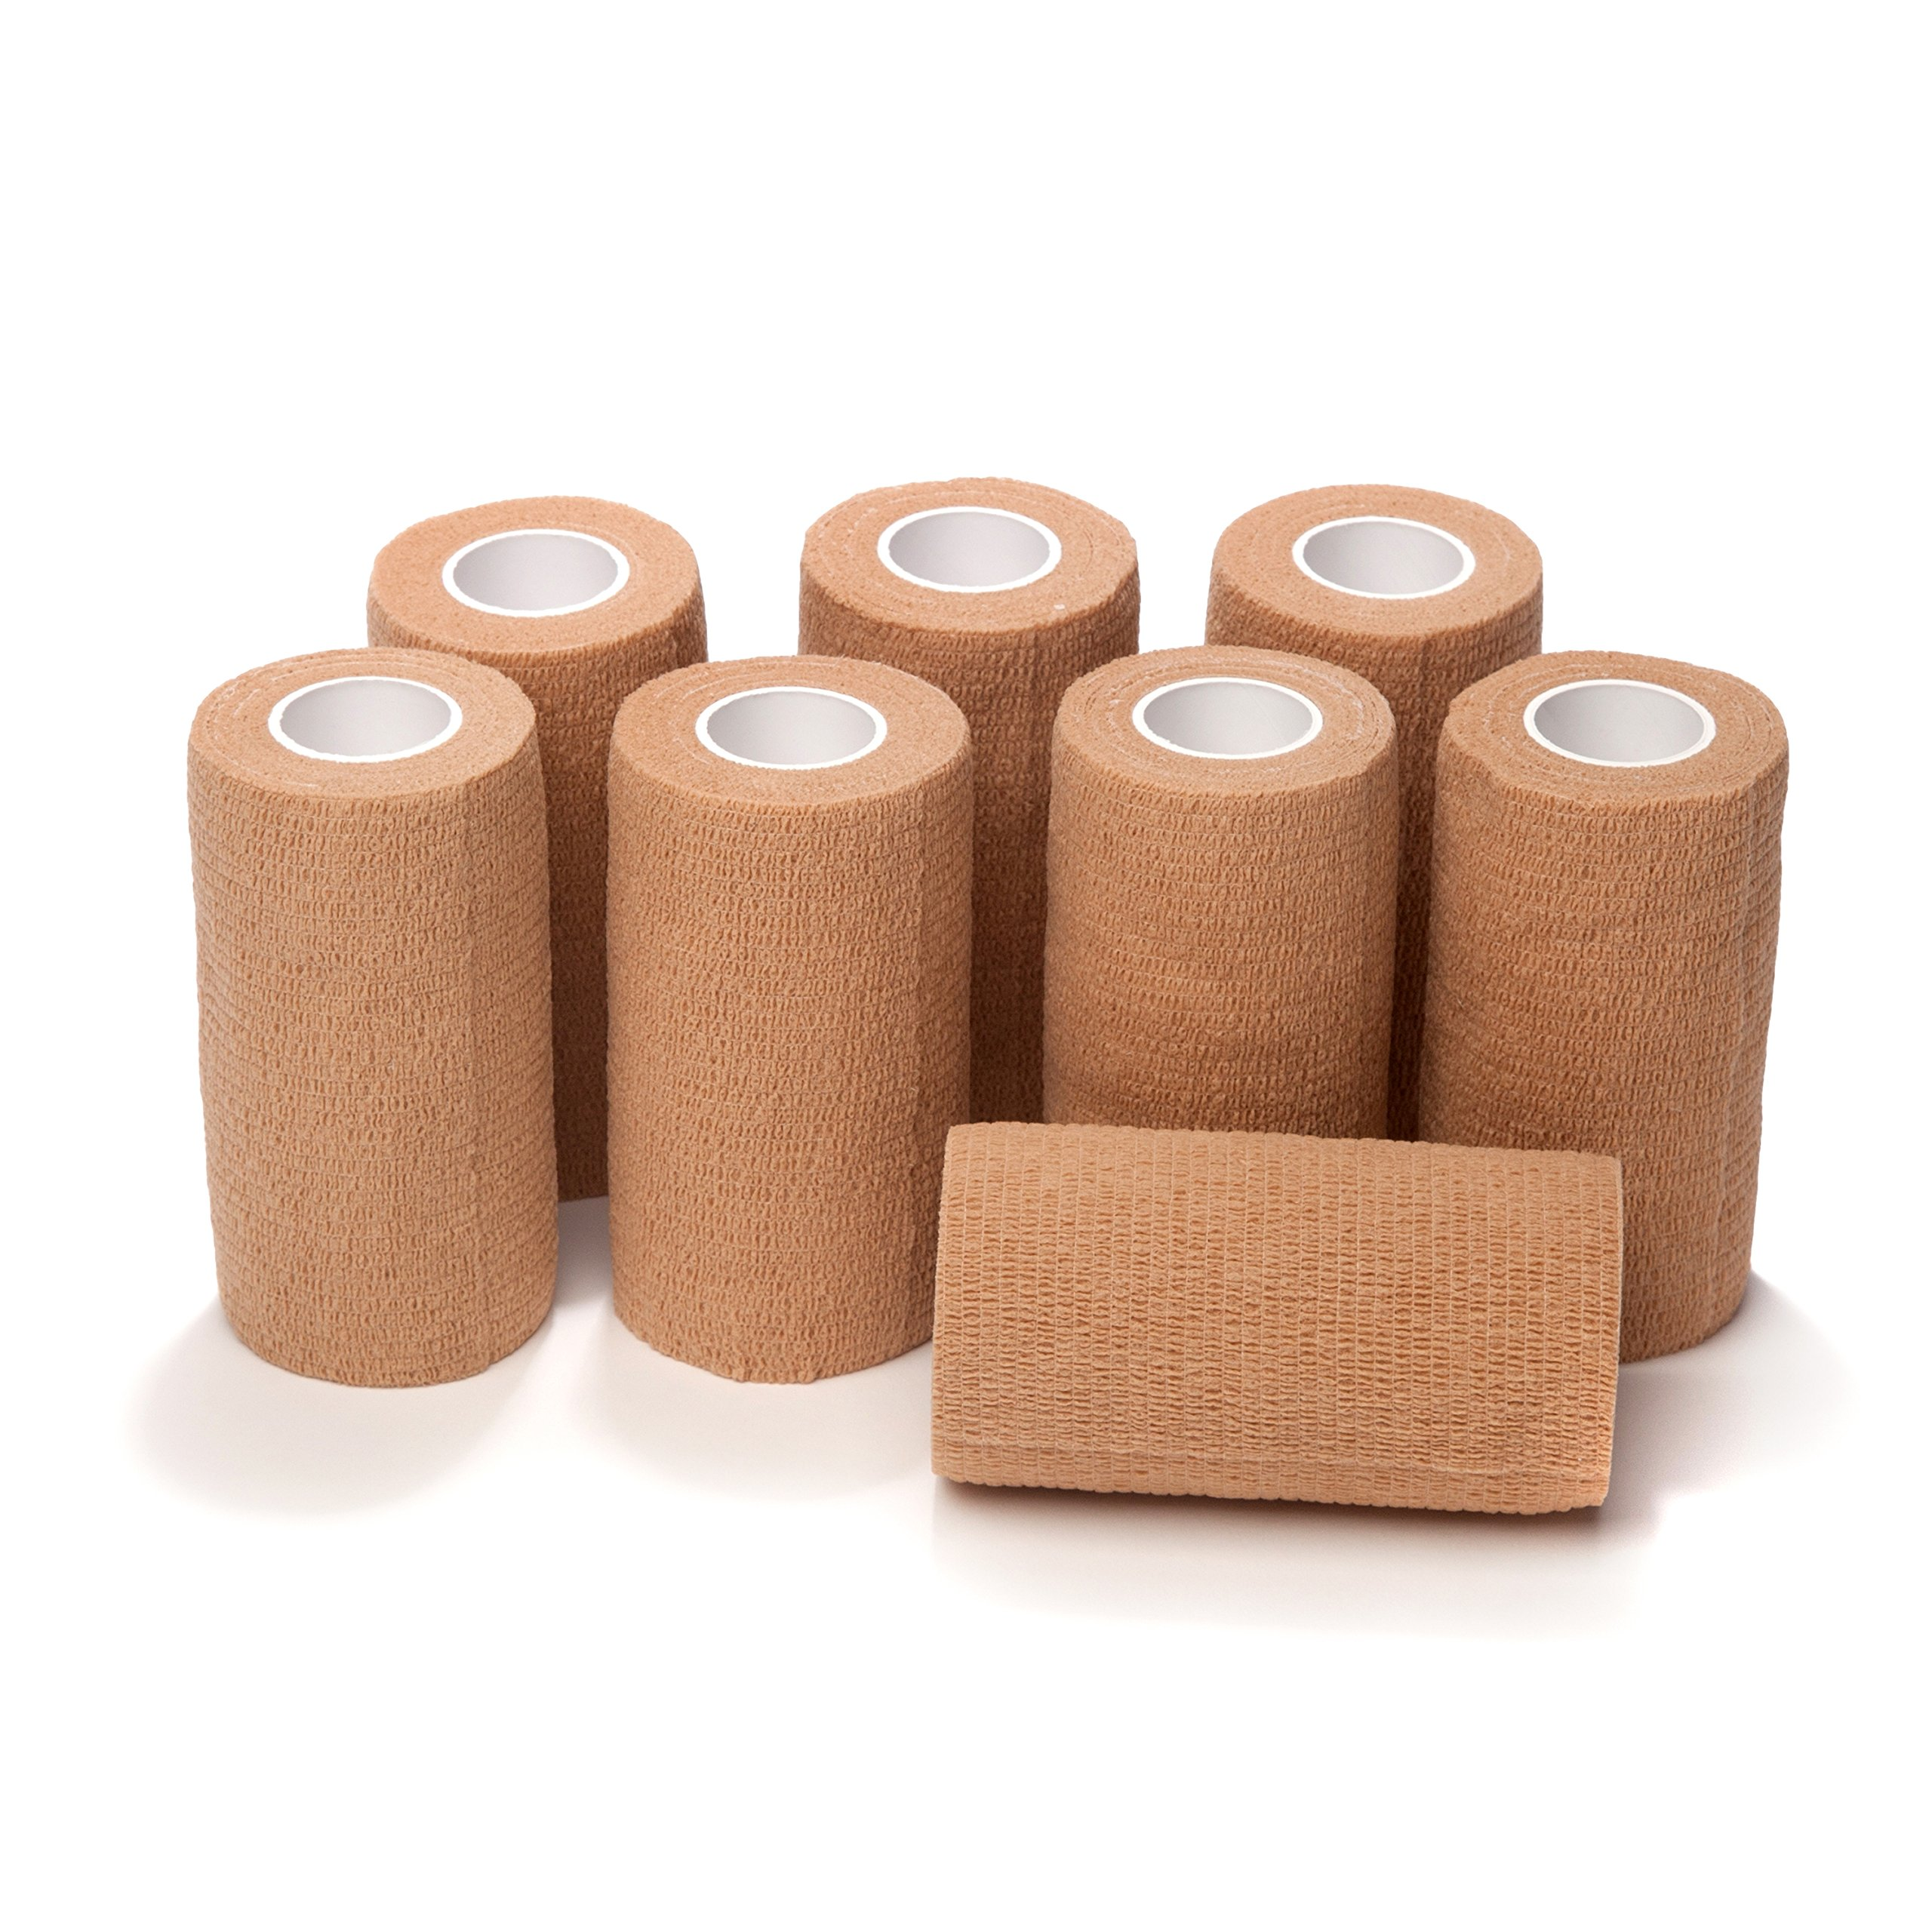 8-Pack, 3'' Wide x 5 Yards, Self-Adherent Cohesive Tape, Strong Sports Tape for Wrist, Ankle Sprains & Swelling, Self-Adhesive Bandage Rolls, Vet Tape Vet Wrap, Brown Color, By California Basics